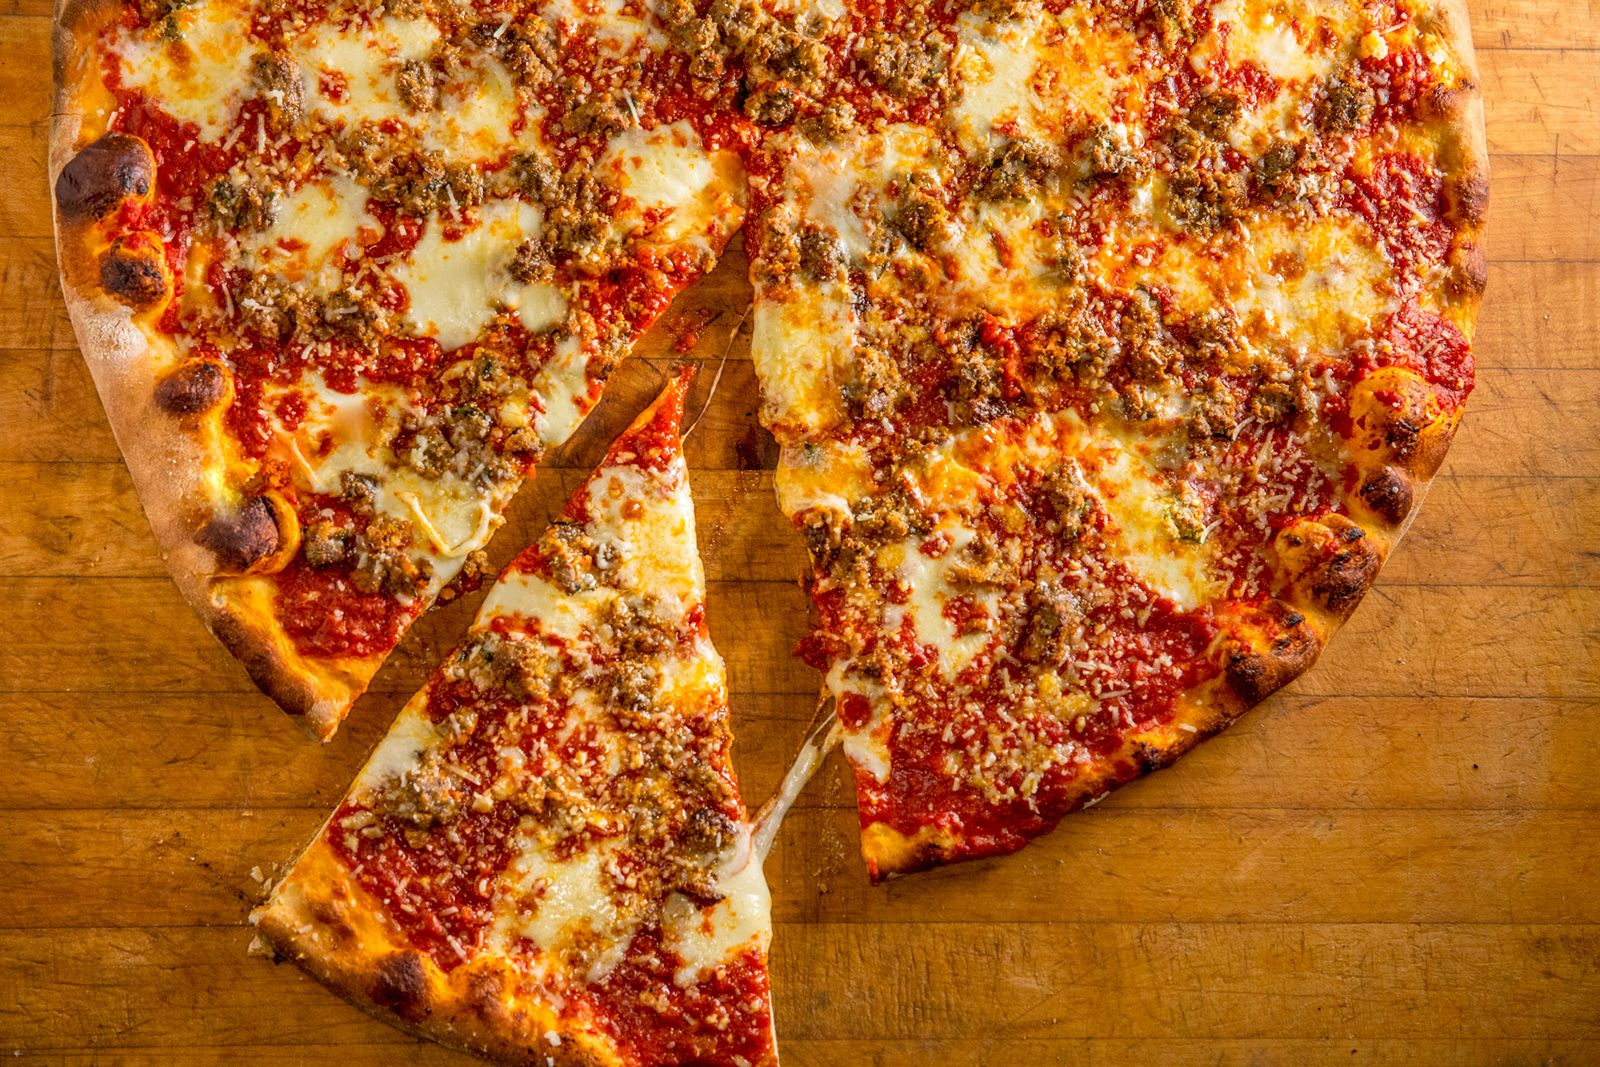 Artichoke Basille's Pizza, known for its authentic NYC slices and whole pies, will be opening its first Connecticut outpost later this Fall at 2391 Berlin Turnpike in Newington, CT.